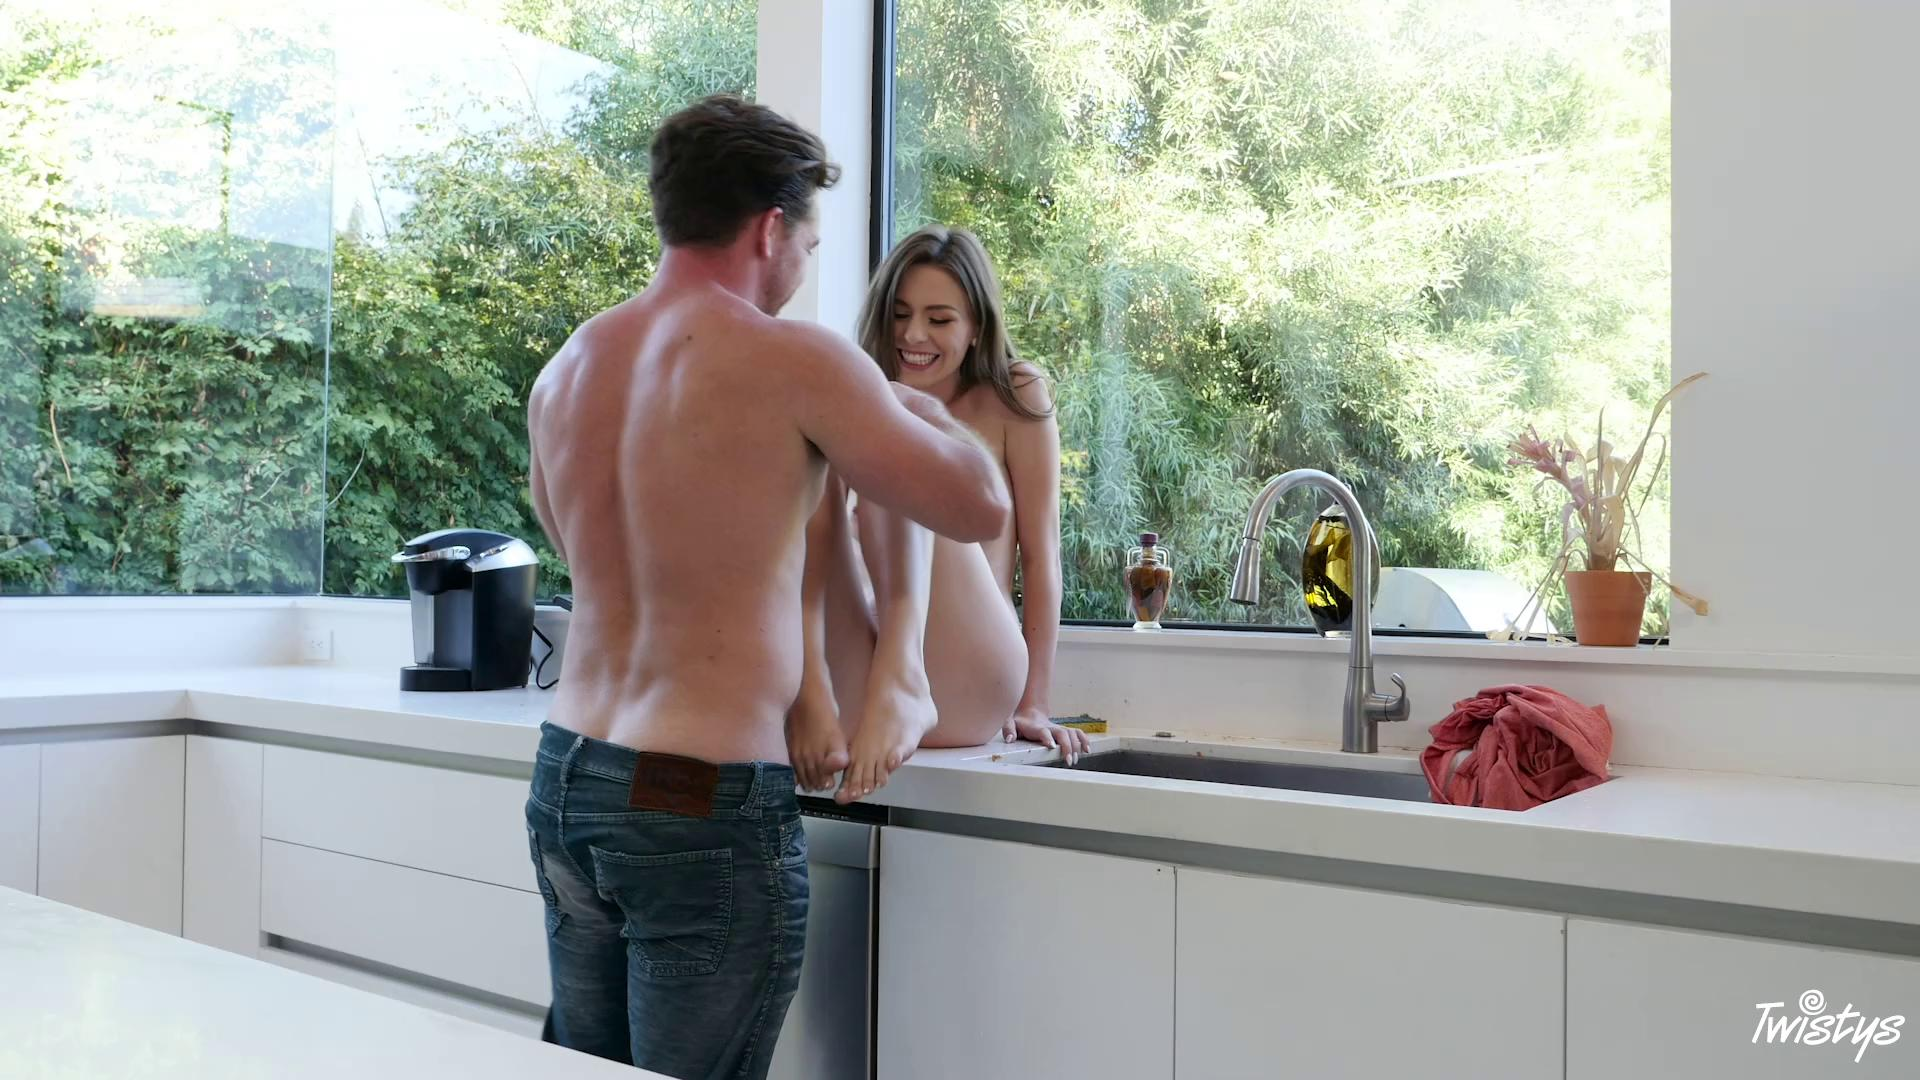 TwistysHard – Alex Blake Some Like It Juicy